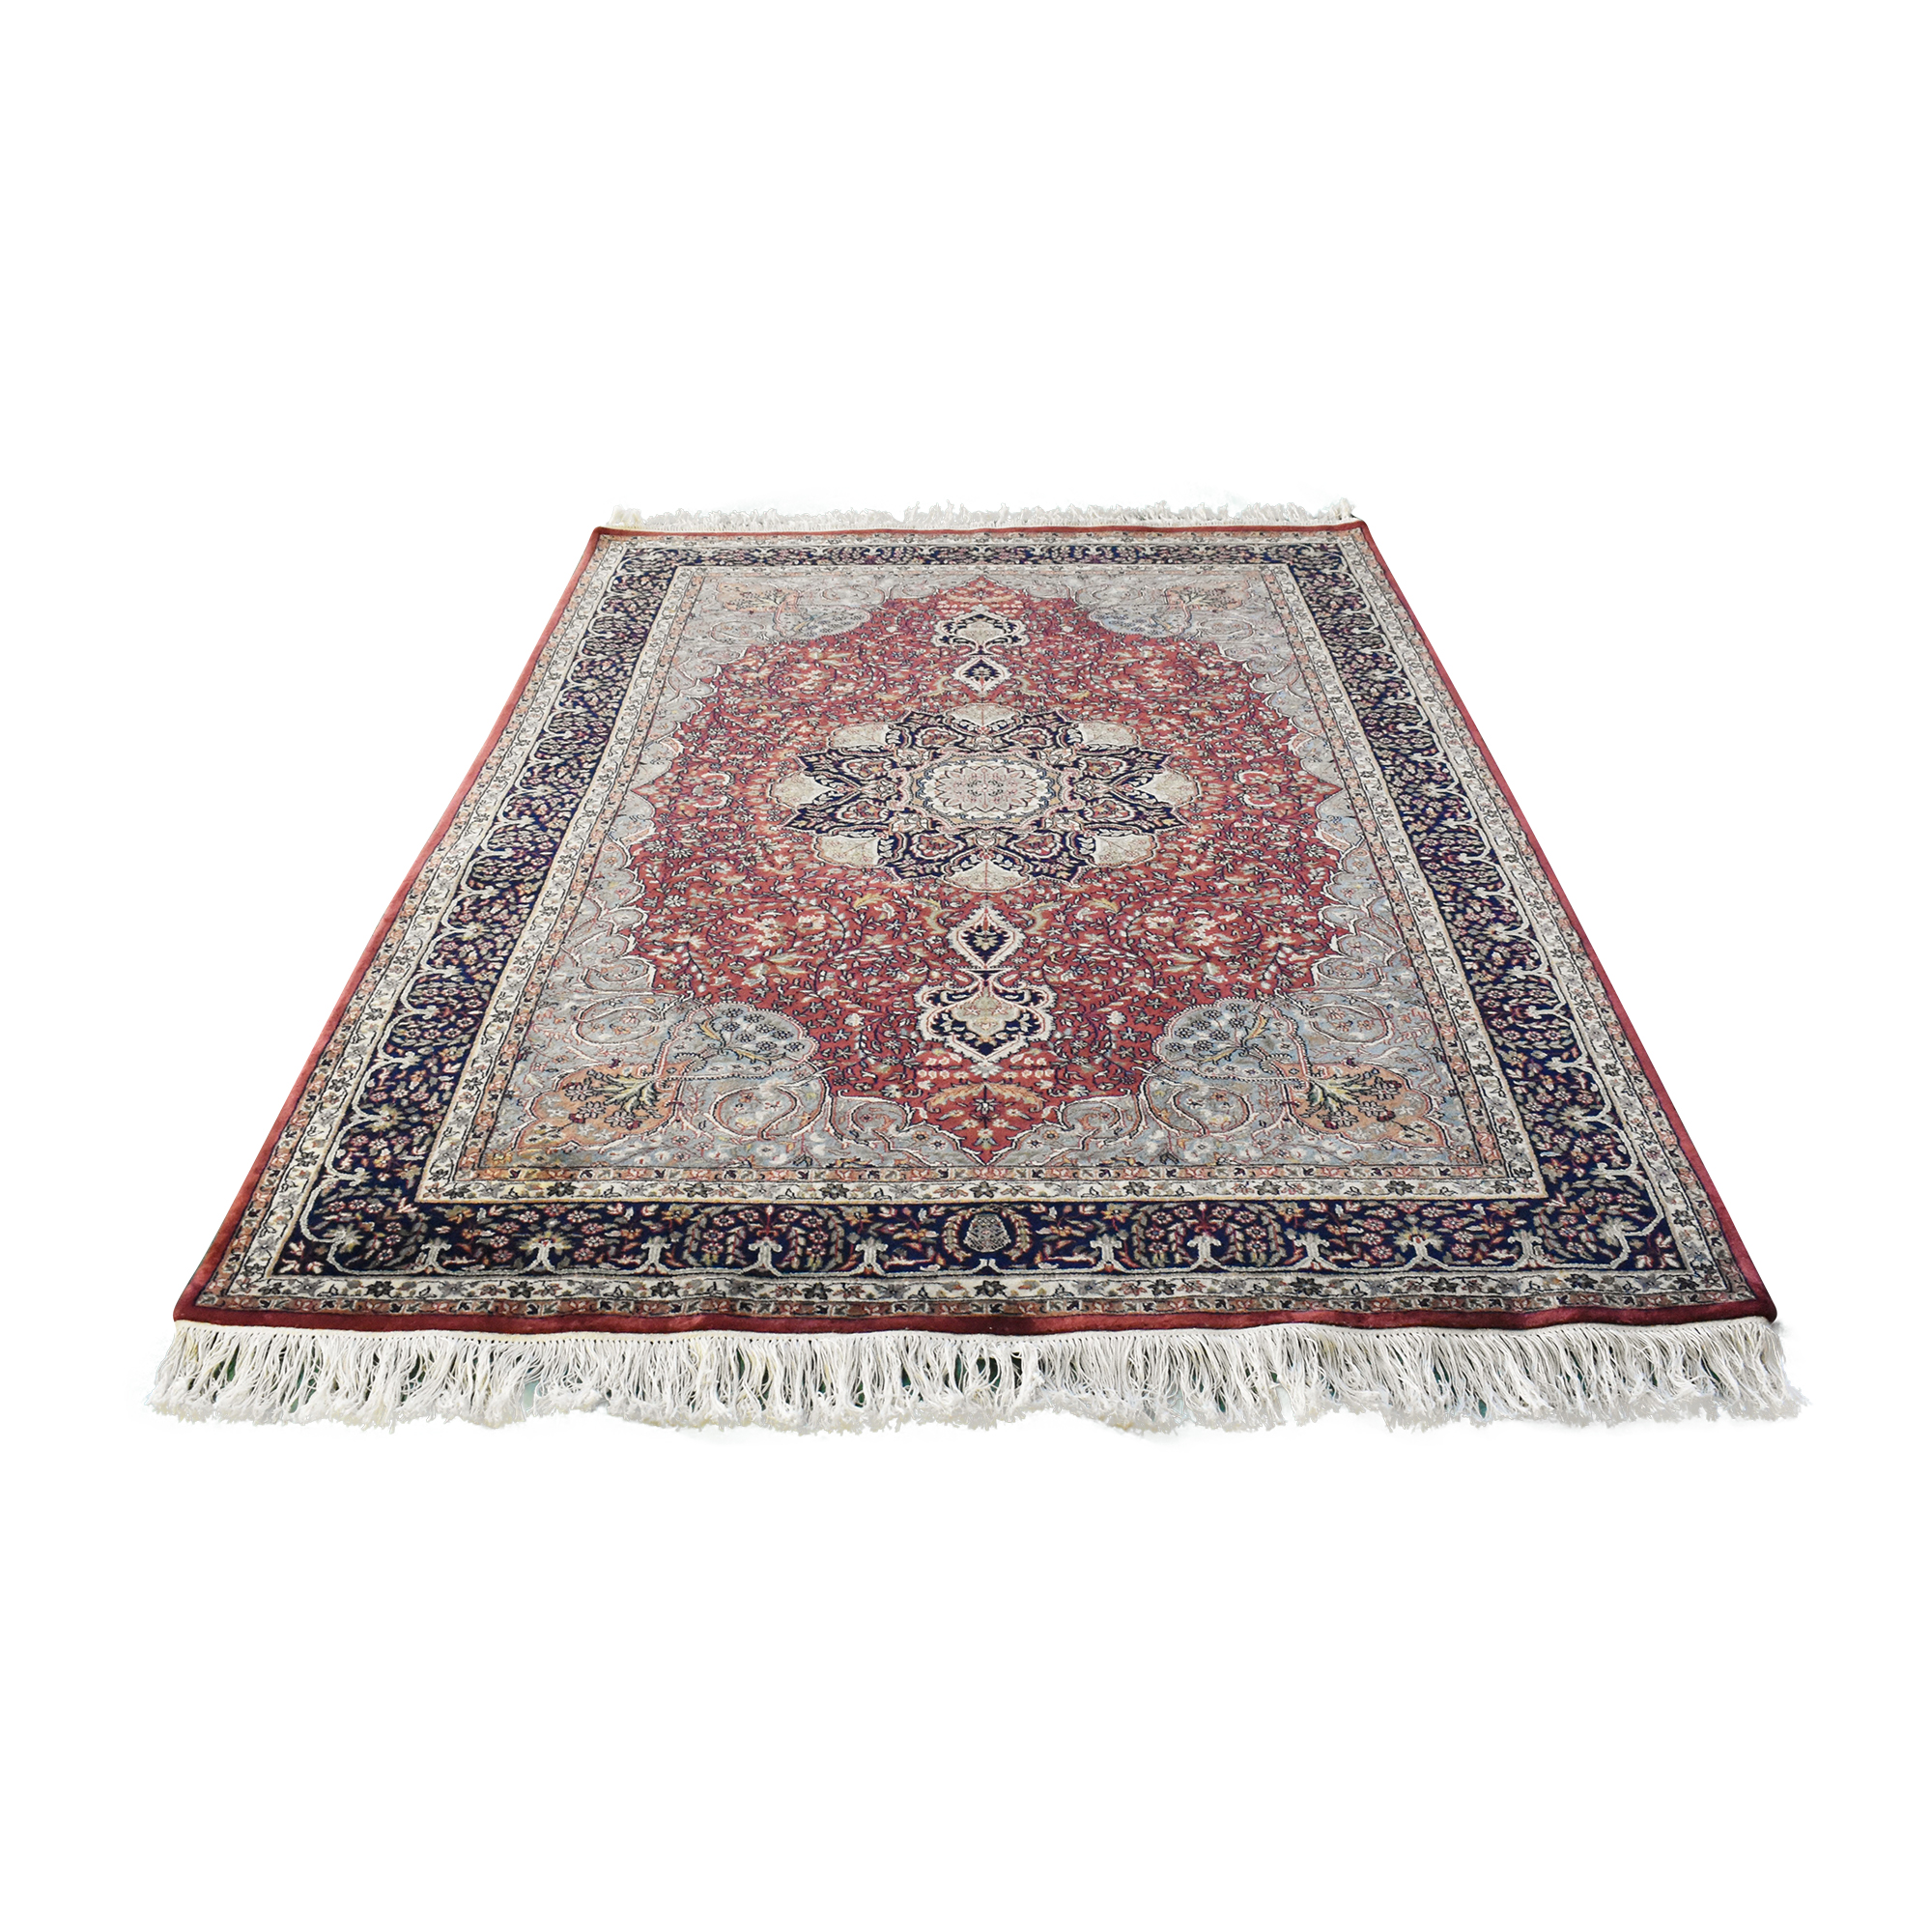 Macy's Patterned Area Rug / Decor